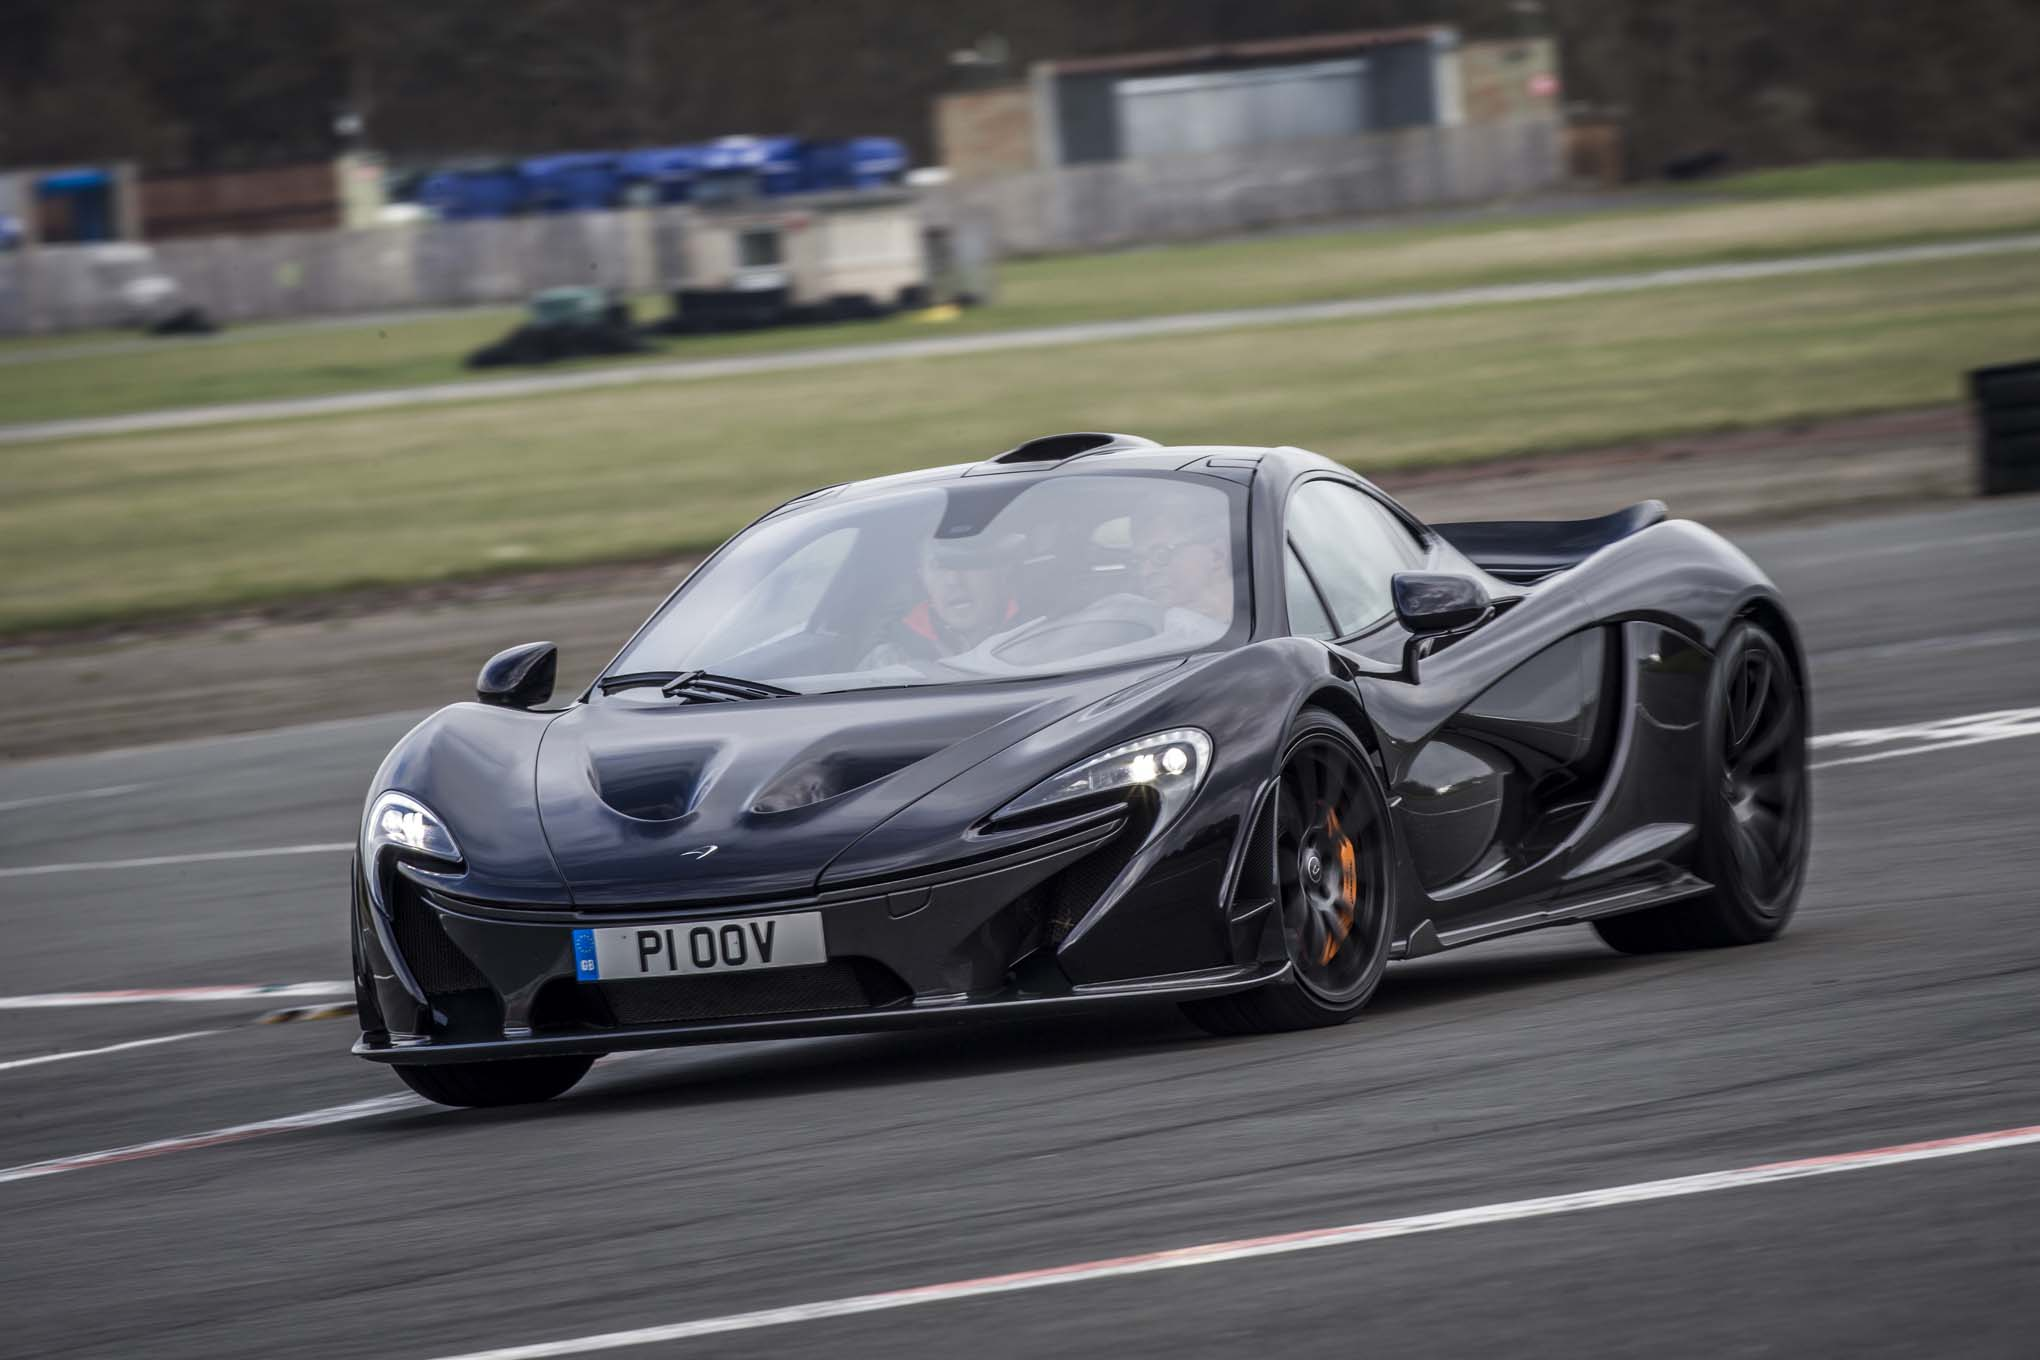 https://st.automobilemag.com/uploads/sites/11/2014/03/2014-Mclaren-P1-black-front-end-in-motion-04.jpg